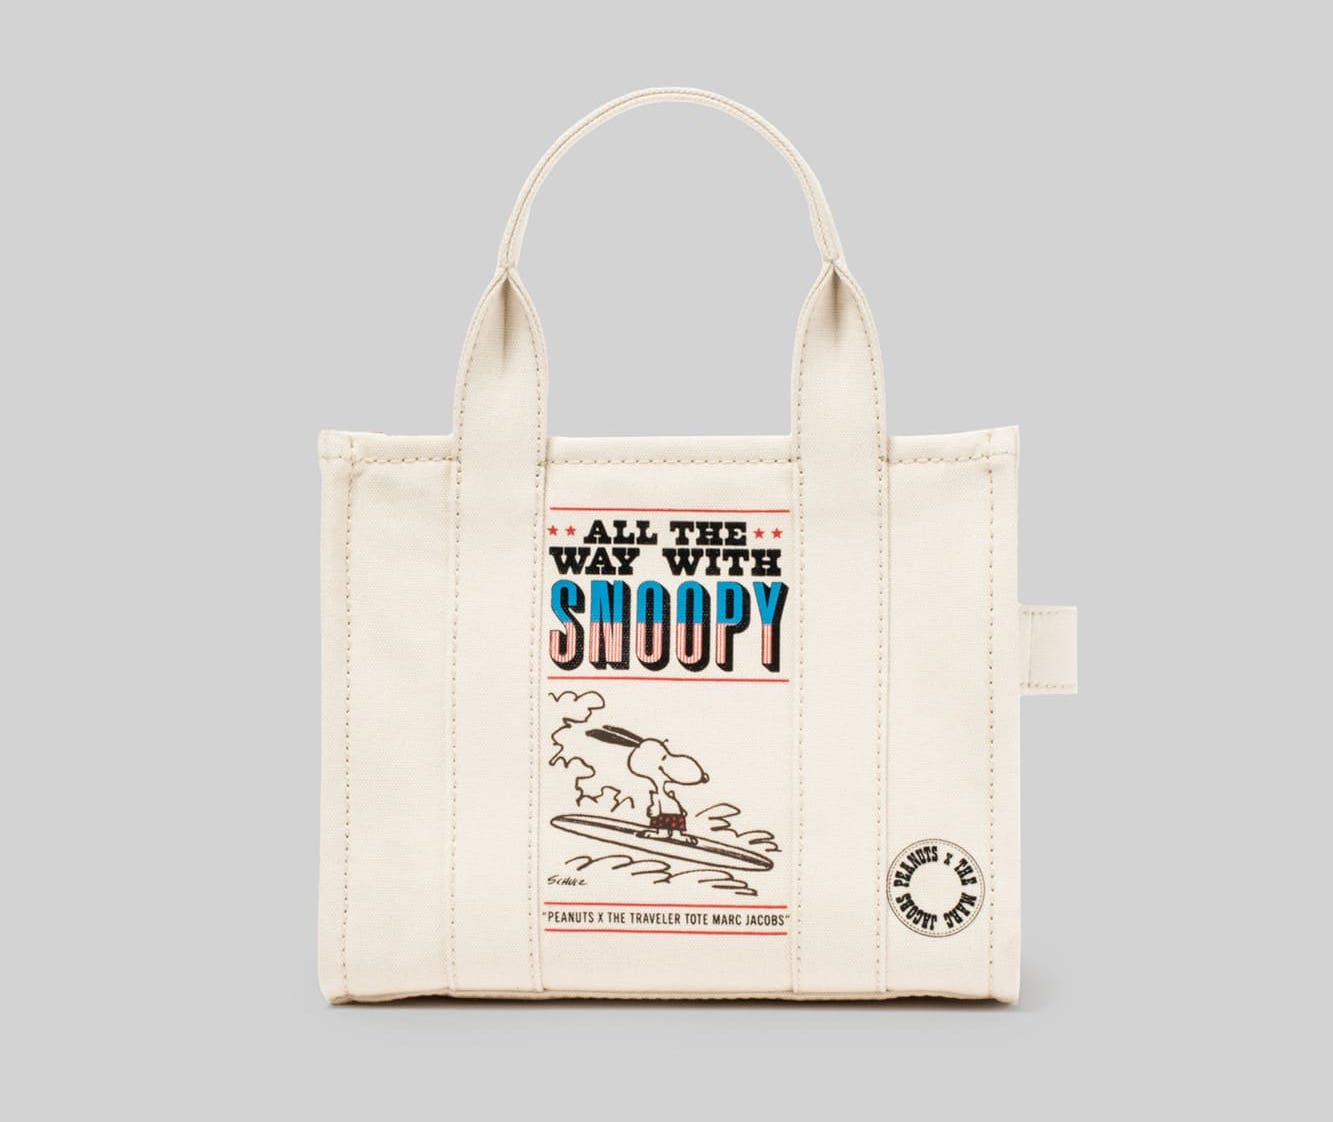 marc jacobs peanut collection - the snapshot - tote